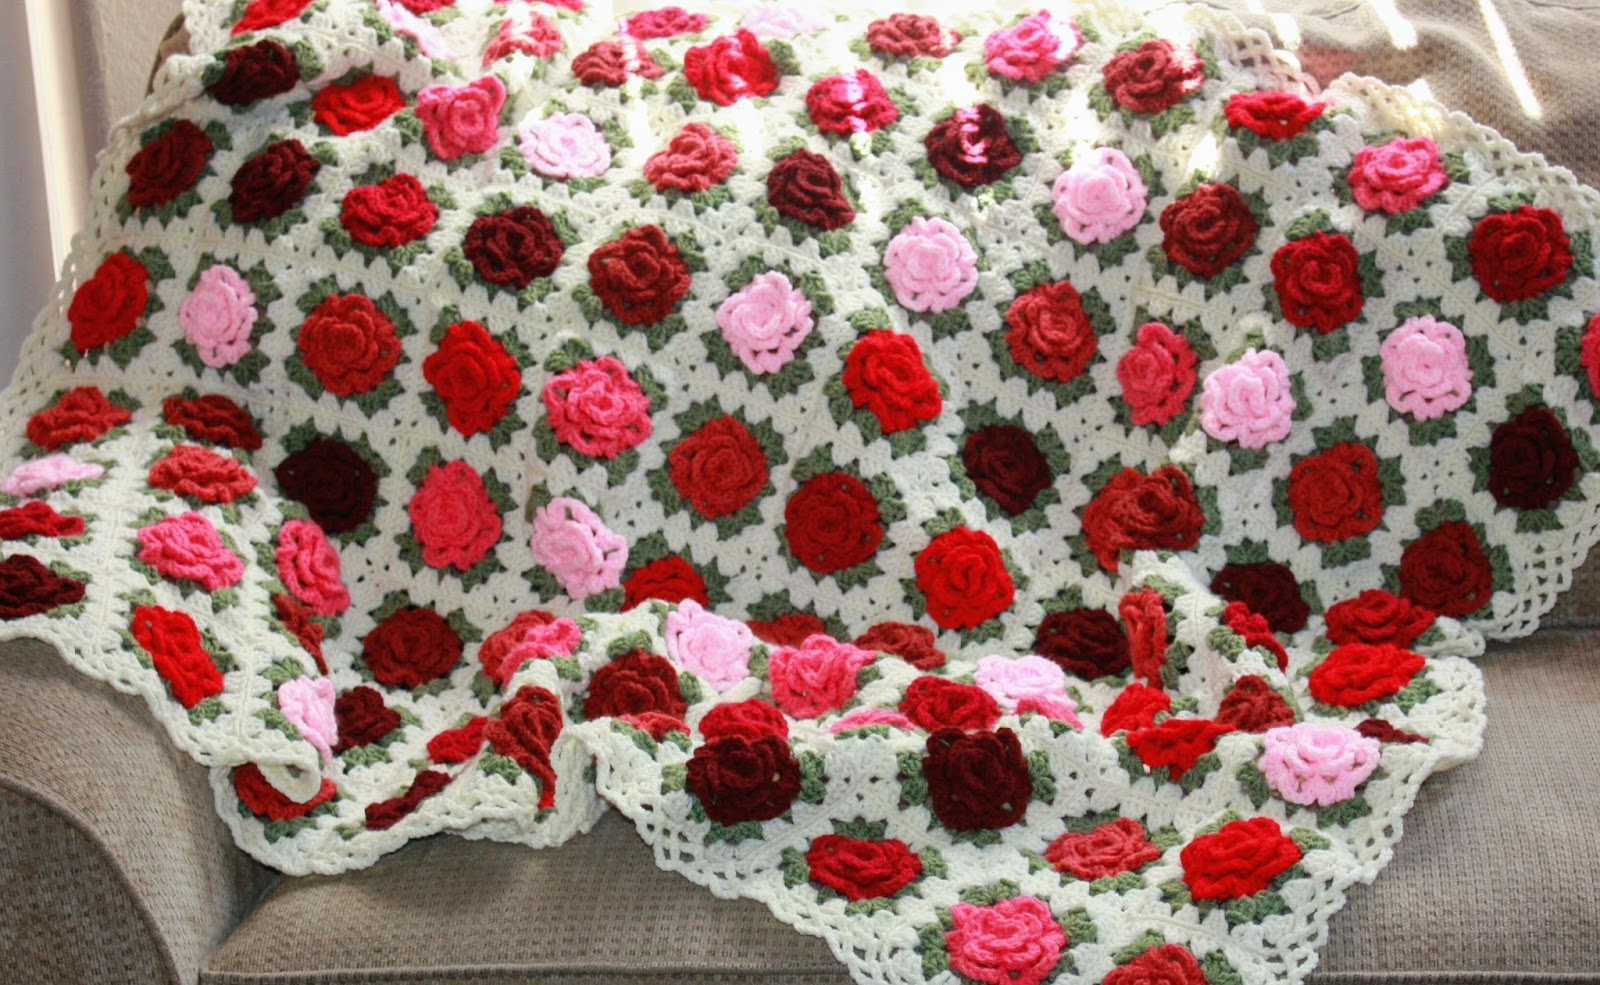 Apple Blossom Dreams: Pink and Red Granny Rose Afghan of Love